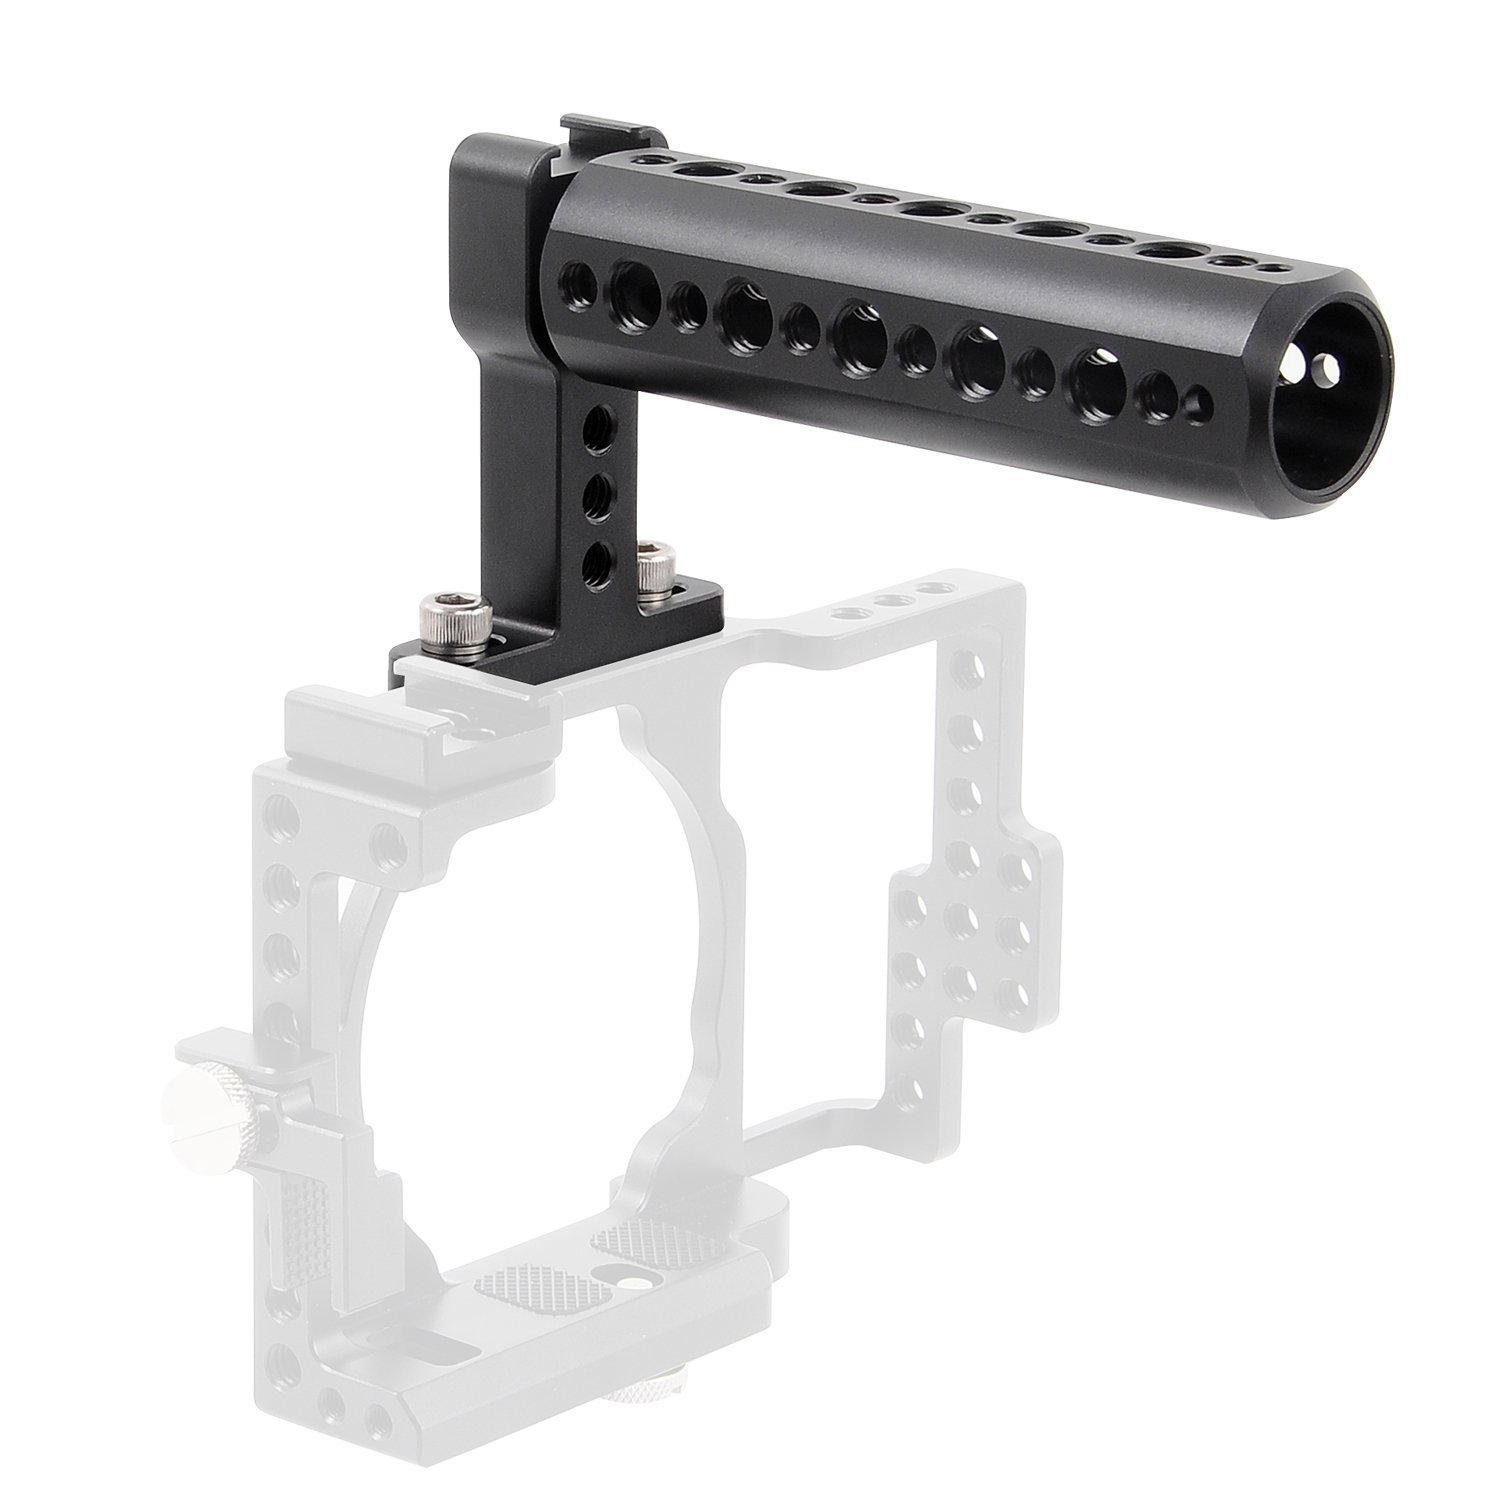 Camera Top Handle,FOTYRIG camera Cheese Handle Grip with Cold Shoe and 1/4'' 3/8'' Thread Mount for Digital Dslr Monitor, LED Light, Microphone, Magic Arm